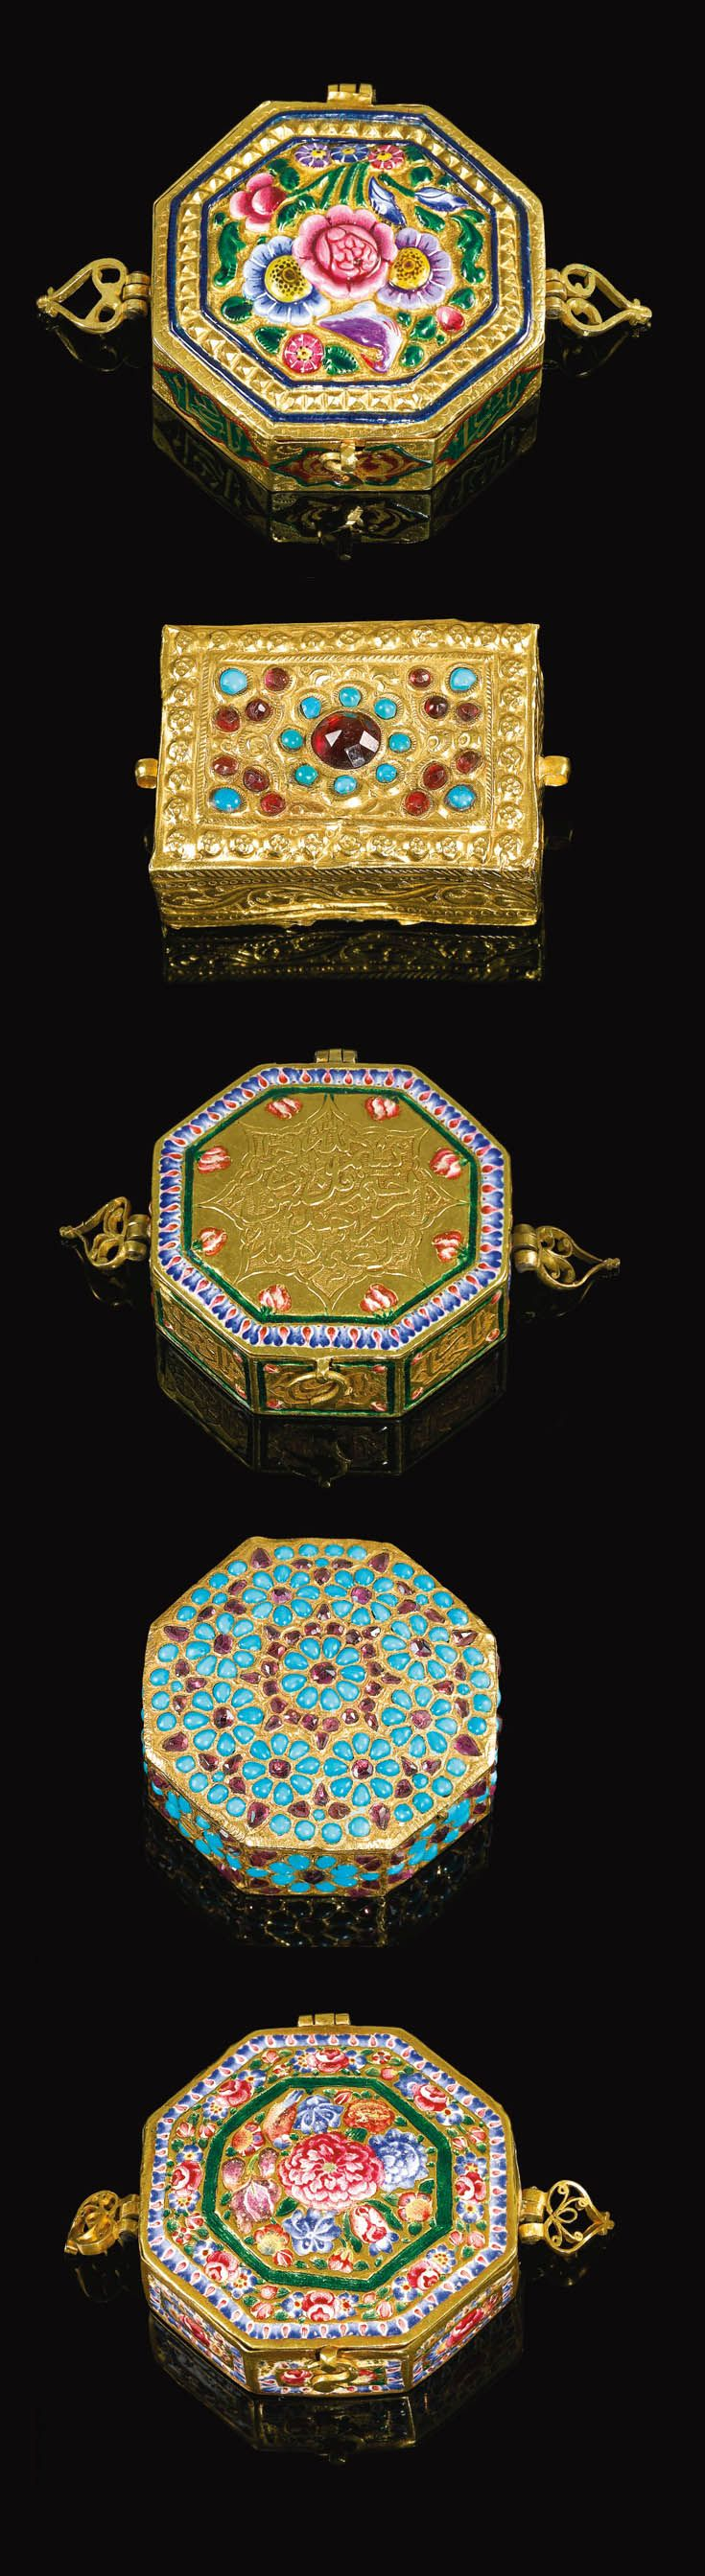 Persia | Five Qajar gold, enamelled and jewelled miniature Qur'an cases | ca. 19th - 20th century | 32'500£ ~ sold (Apr '15)